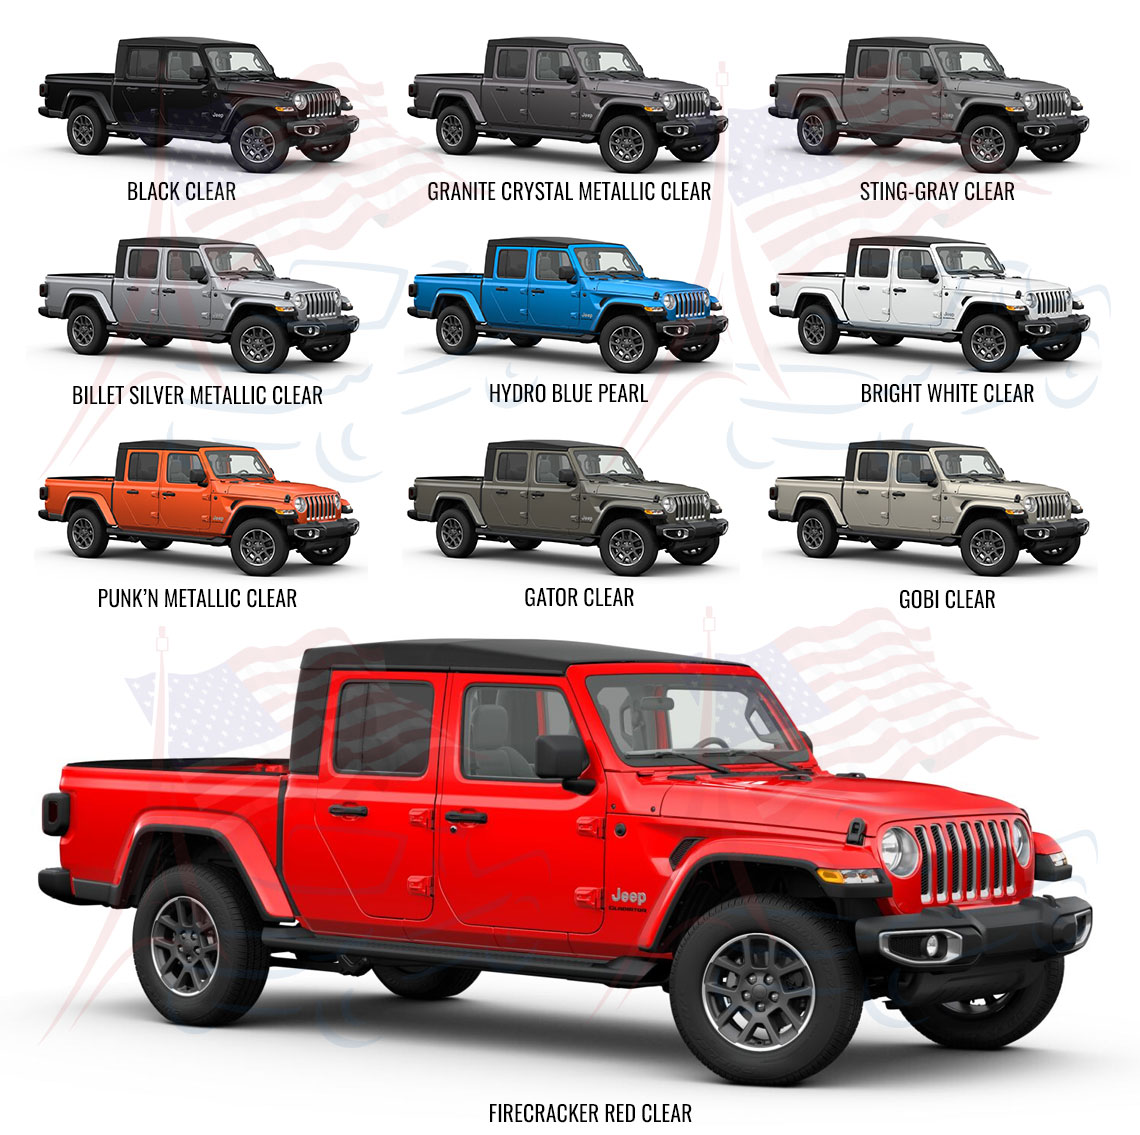 couleurs jeep gladiator